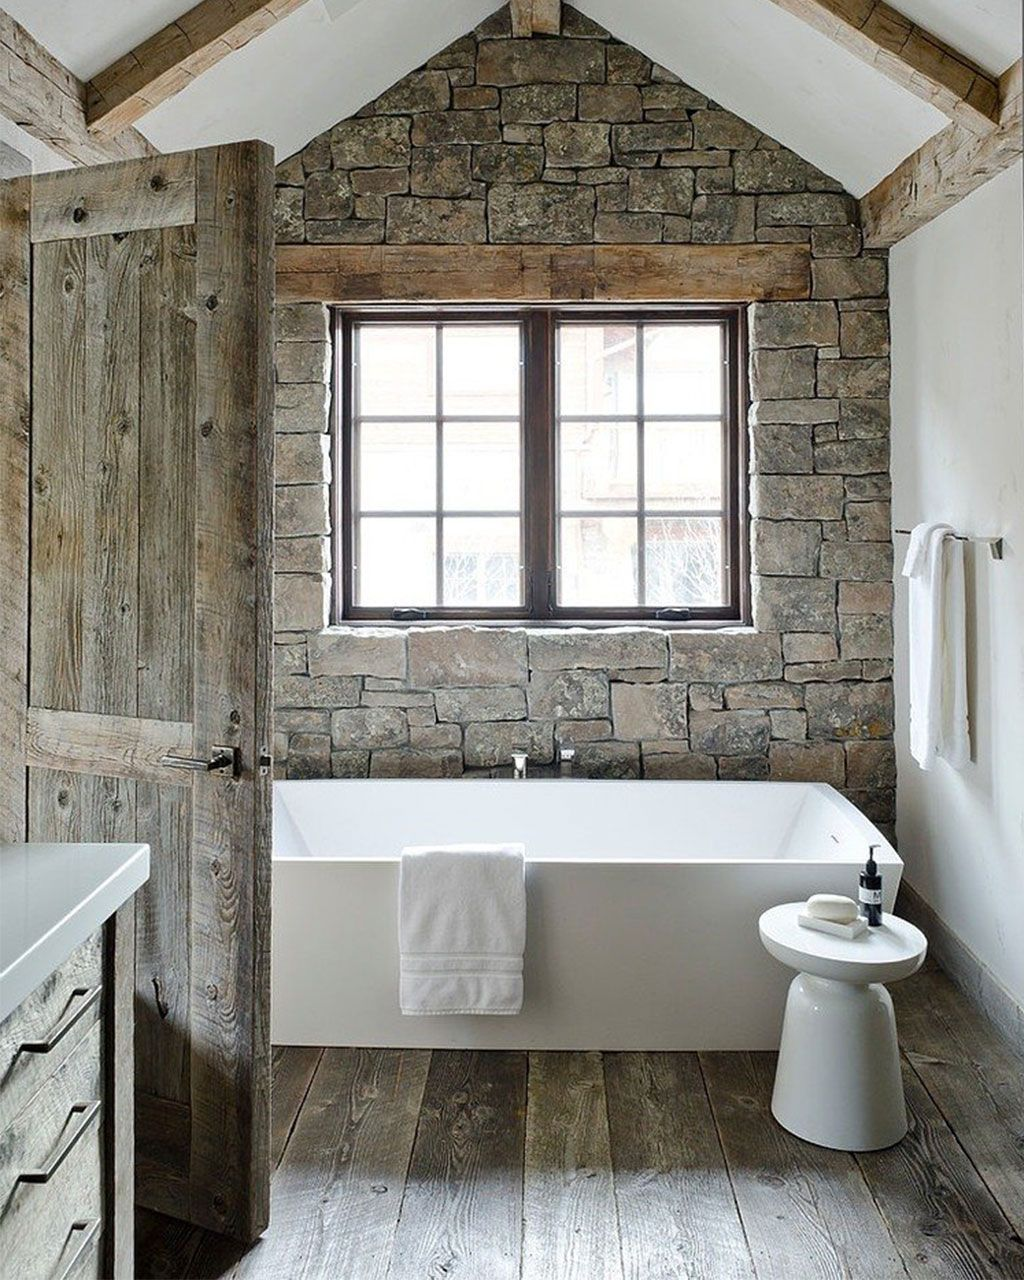 Rustic Bathroom With White Shiplap: -stone Used In Bathroom Modern Rustic Bathroom Design